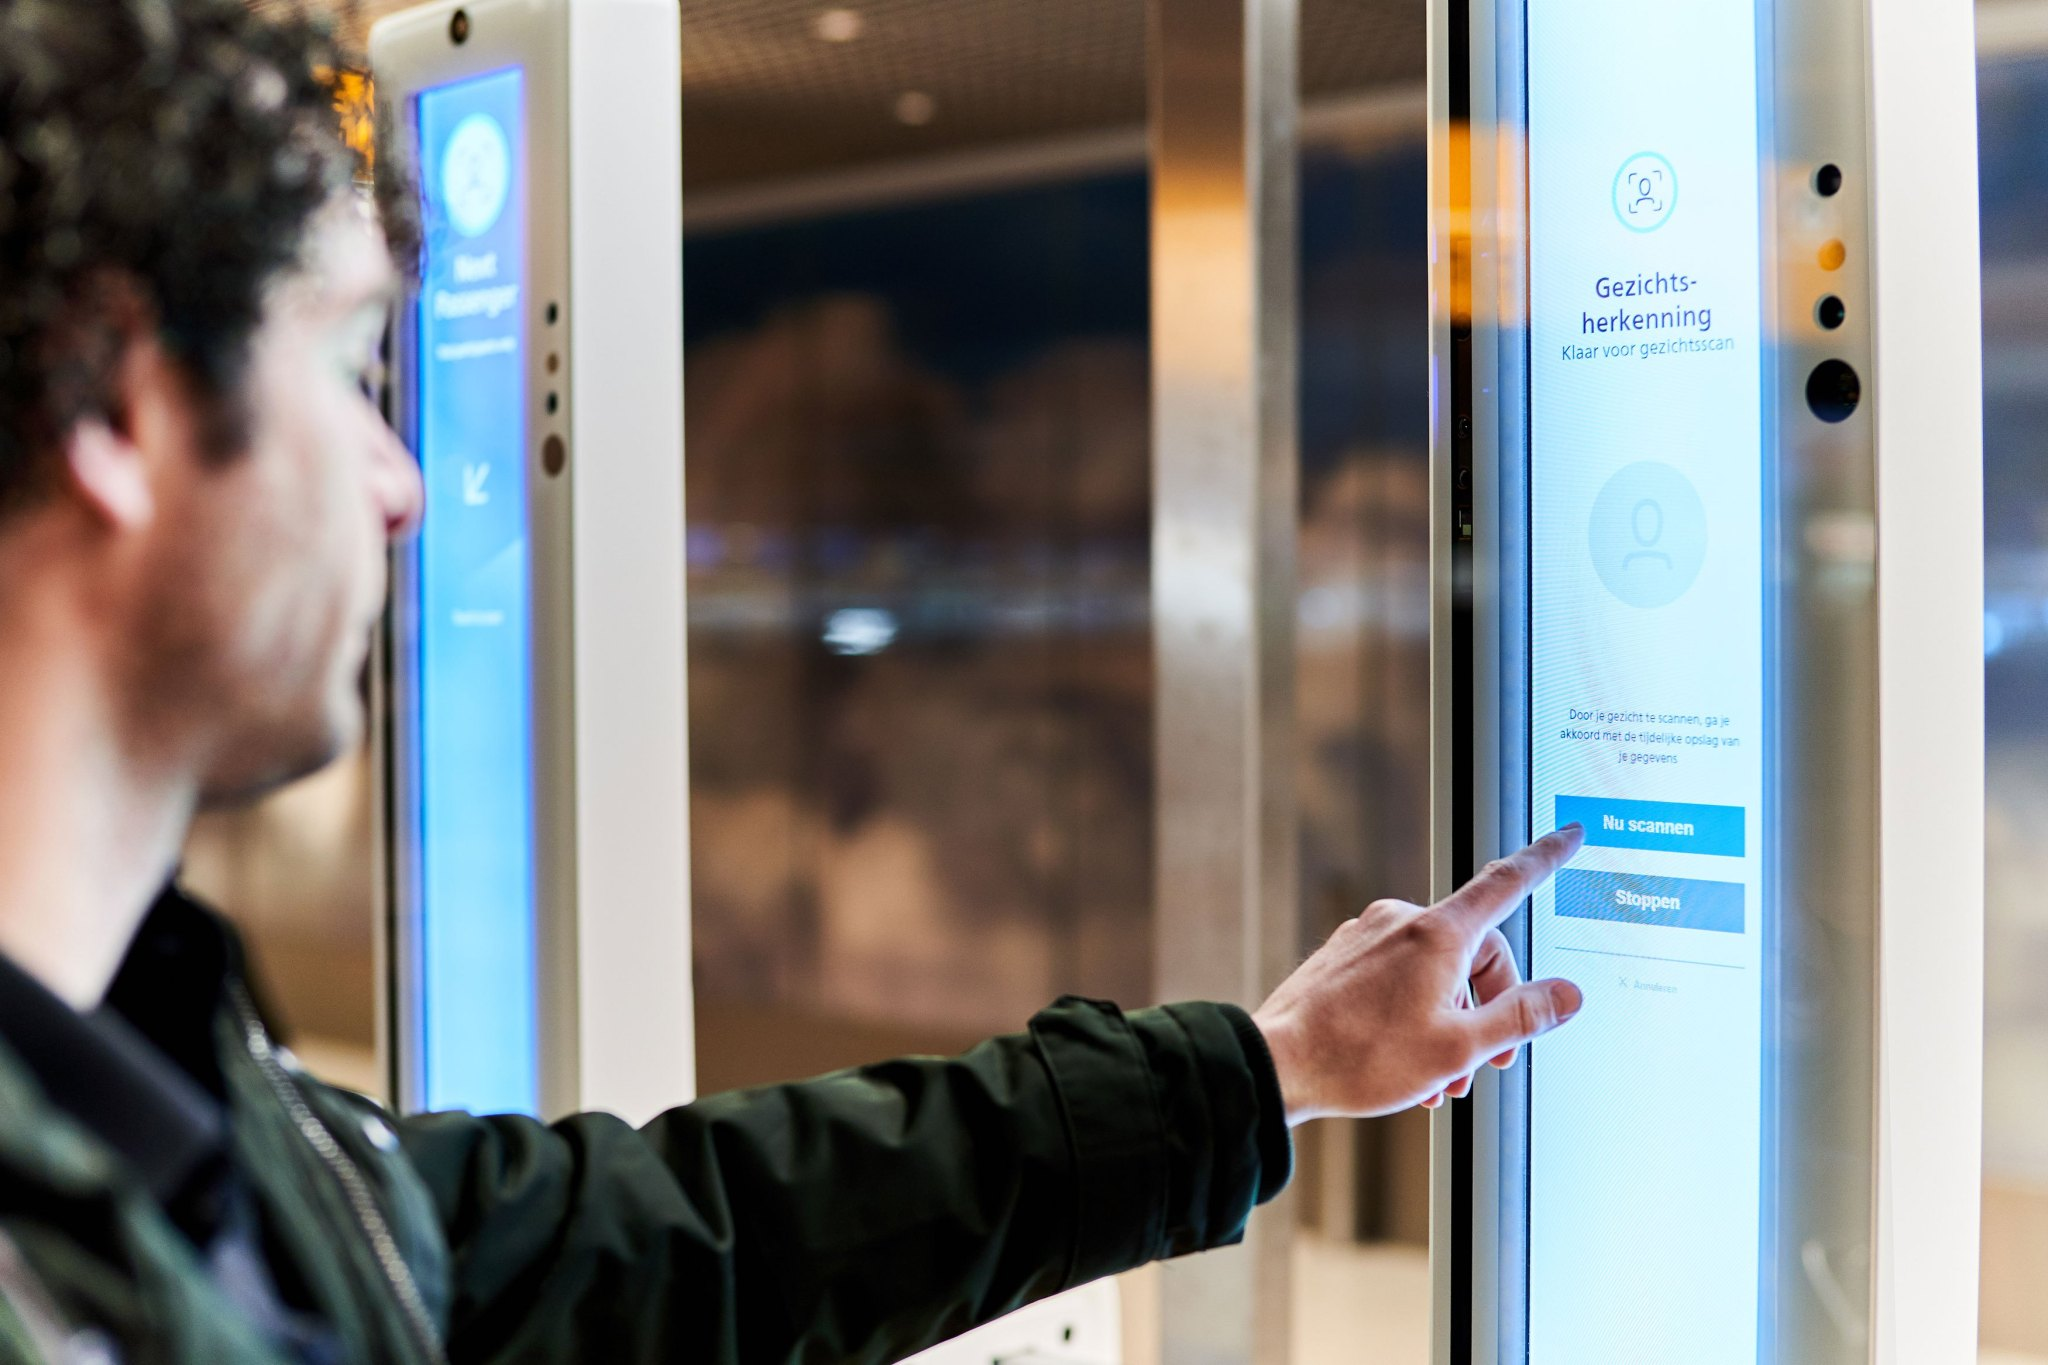 facial-recognition-boarding-Amsterdam-Airport-Schiphol 4